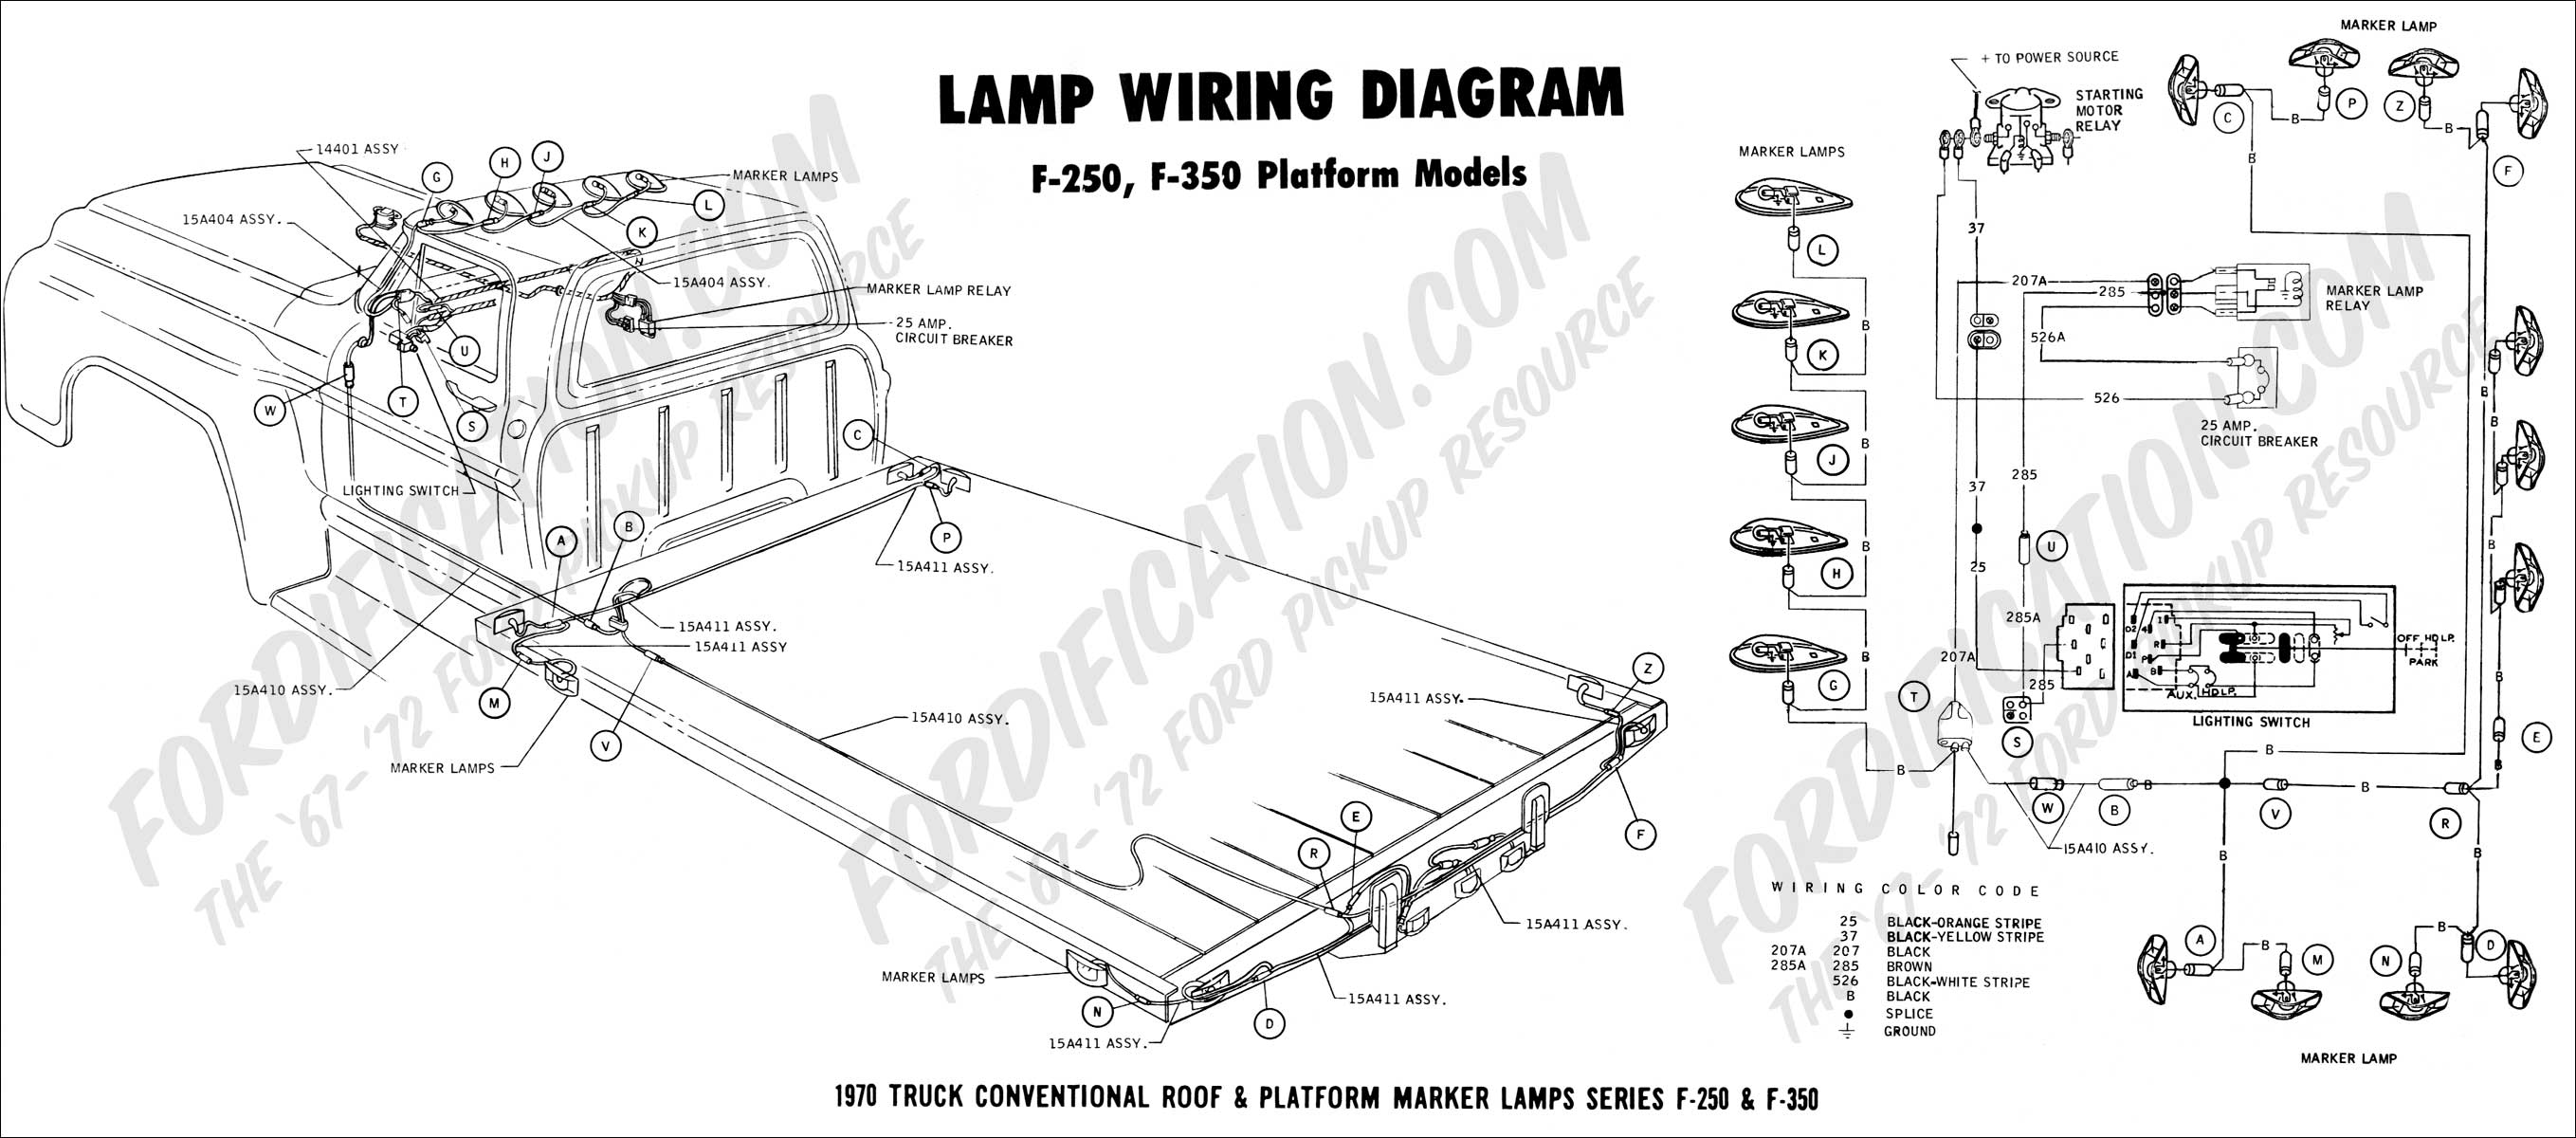 72 ford f100 wiring diagram 1997 f250 headlight switch truck technical drawings and schematics section h